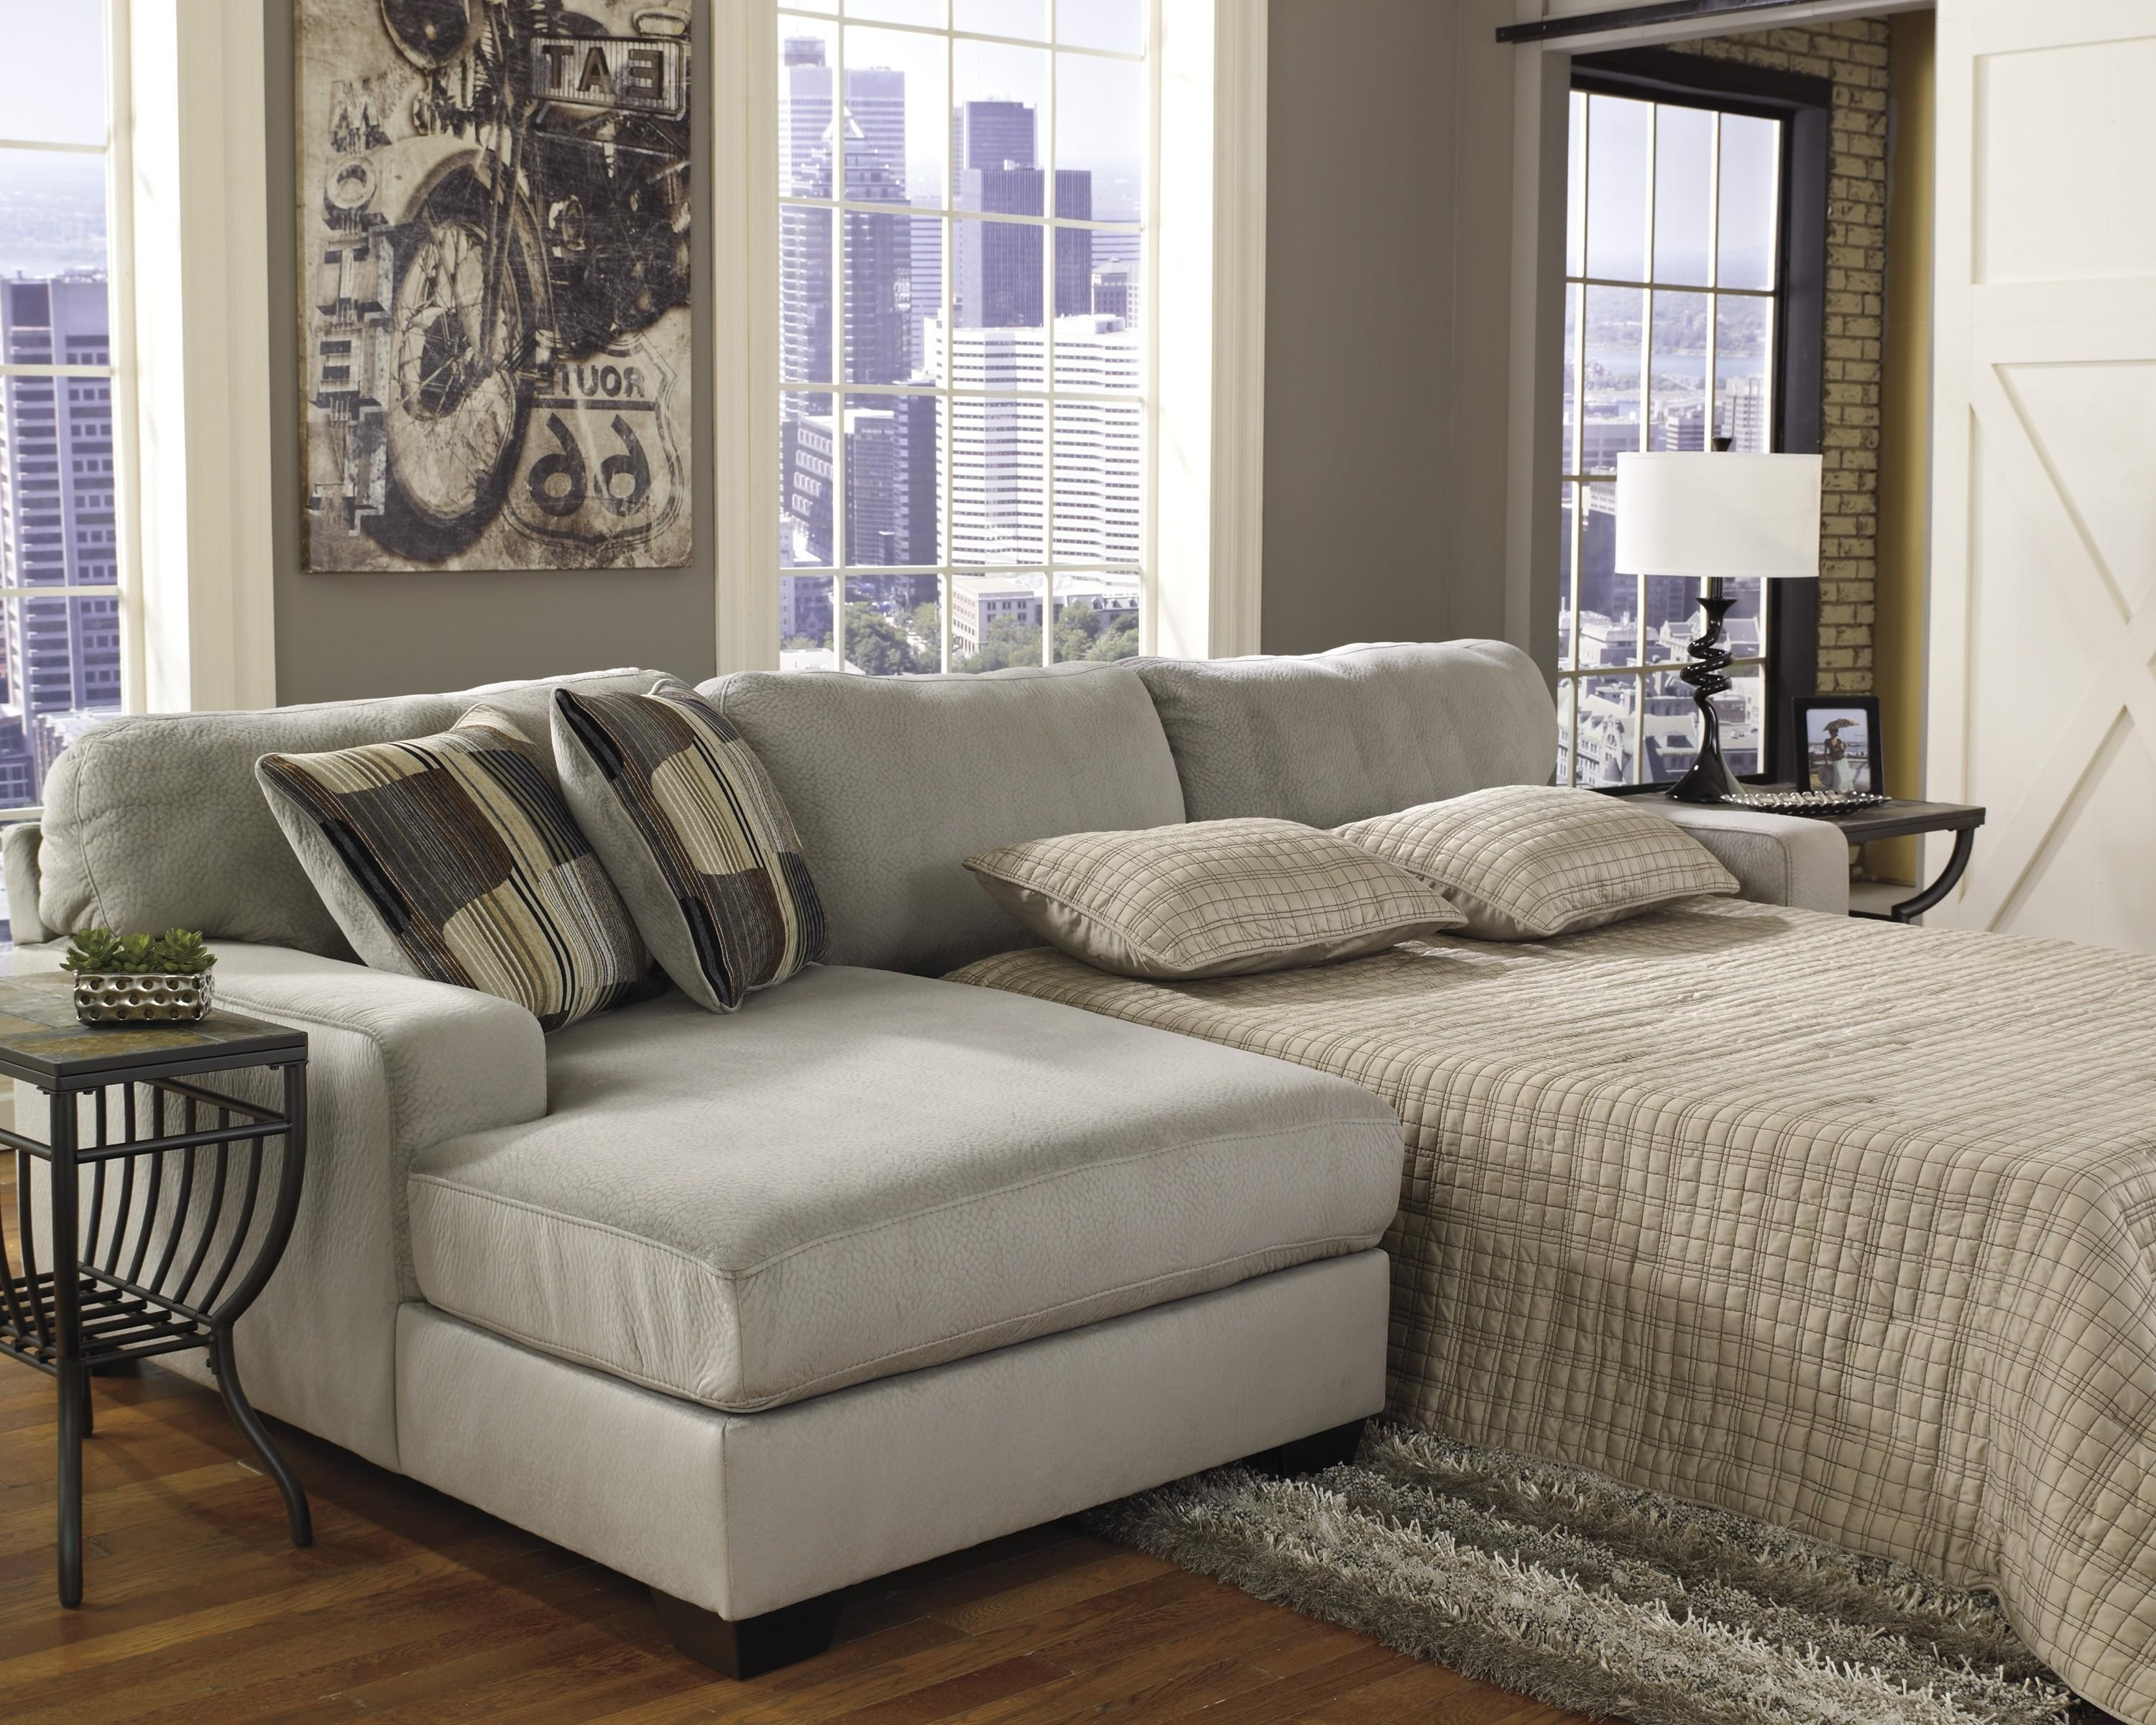 L Shaped Sectional Sleeper Sofa | Tehranmix Decoration In Sectional Sleeper Sofas With Chaise (Image 12 of 20)